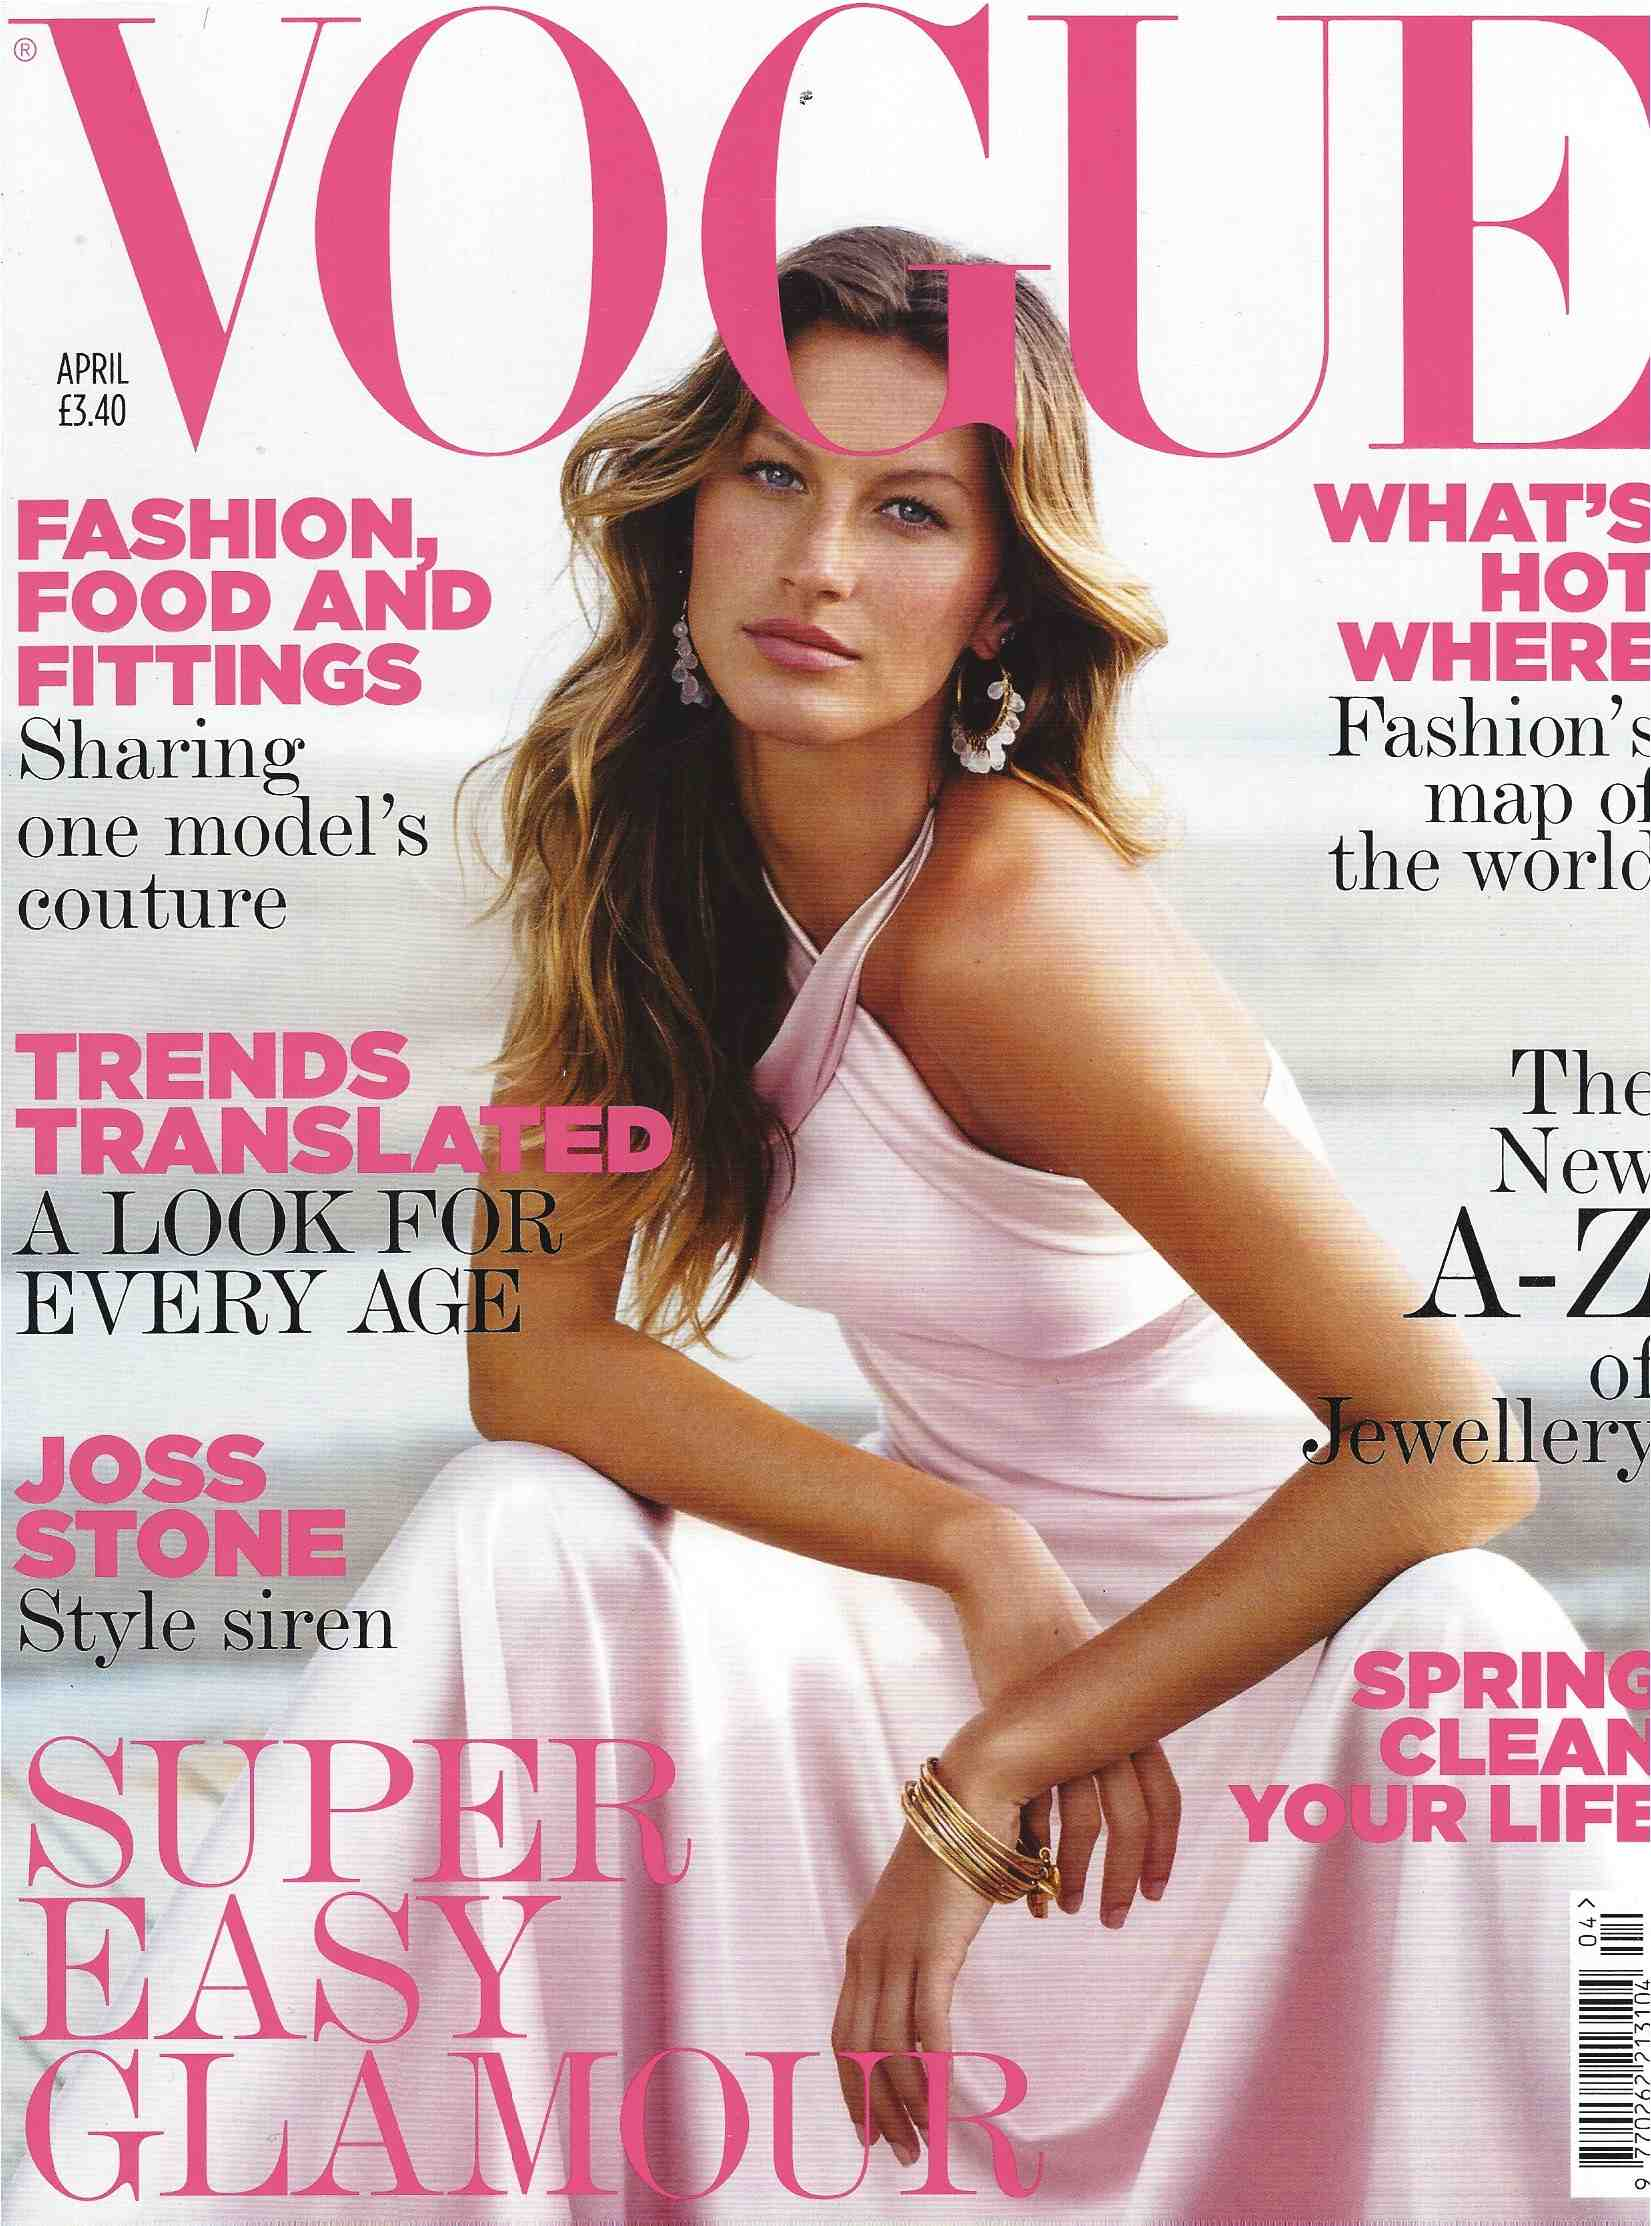 Patrick Demarchelier - British Vogue Cover - Gisele Bundchen April 2005.jpg